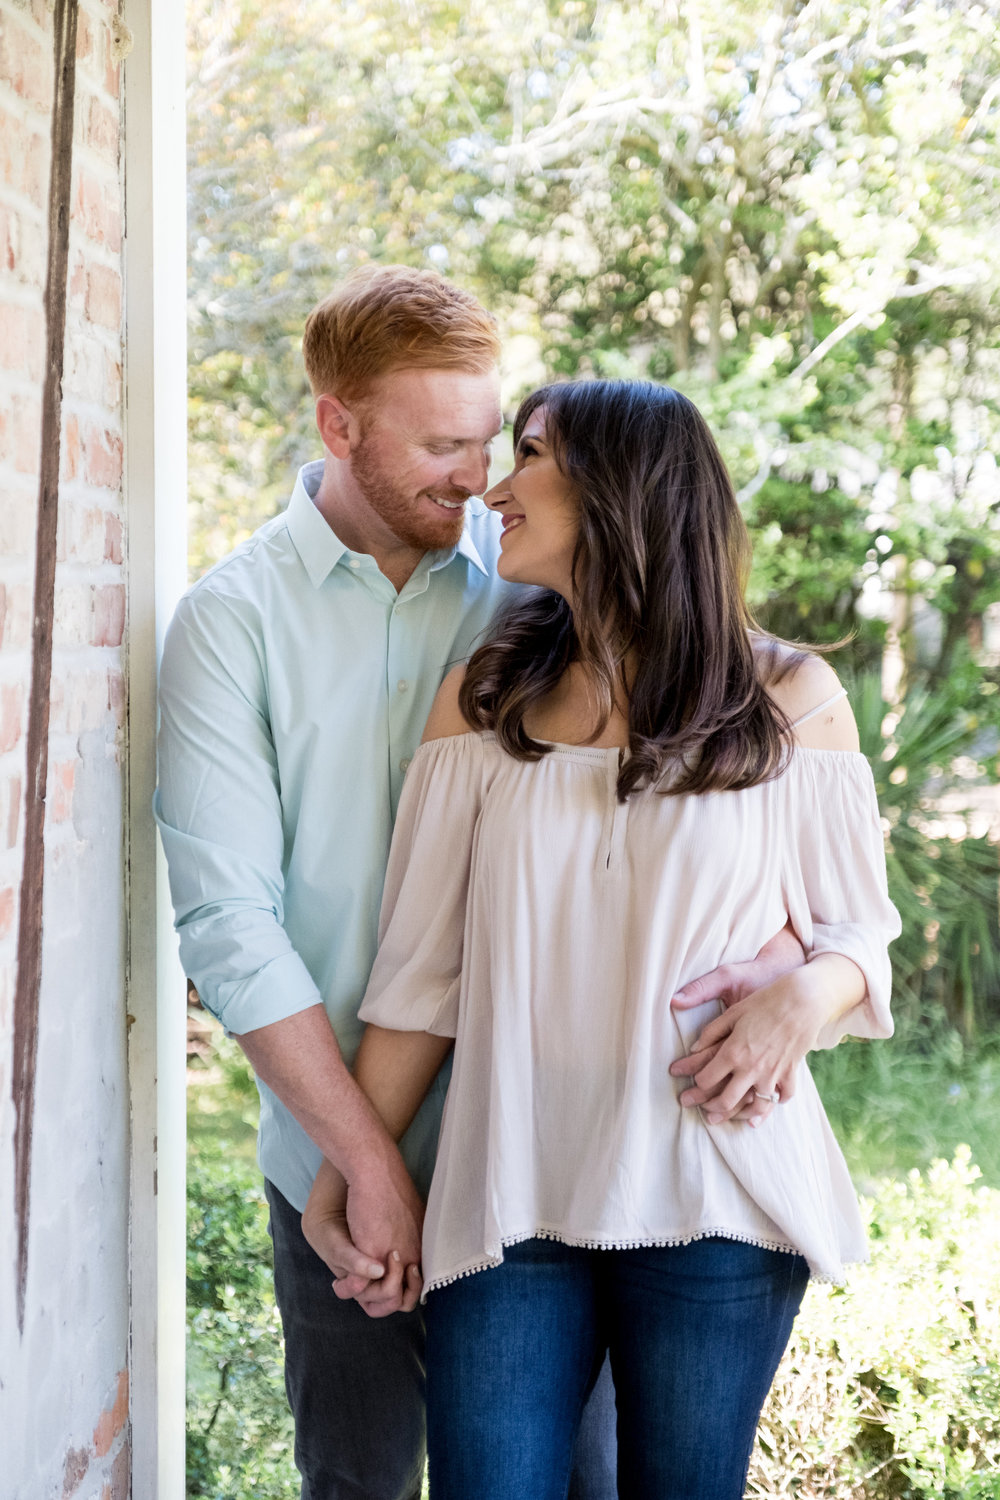 """Jamey at Grace Photography LLC is amazing! She takes her time, very professional and her work is perfection. Jamey is very kind, easy to work with and throughly enjoys what she does. Would highly recommend to anyone who just got engaged!"" Angelle"